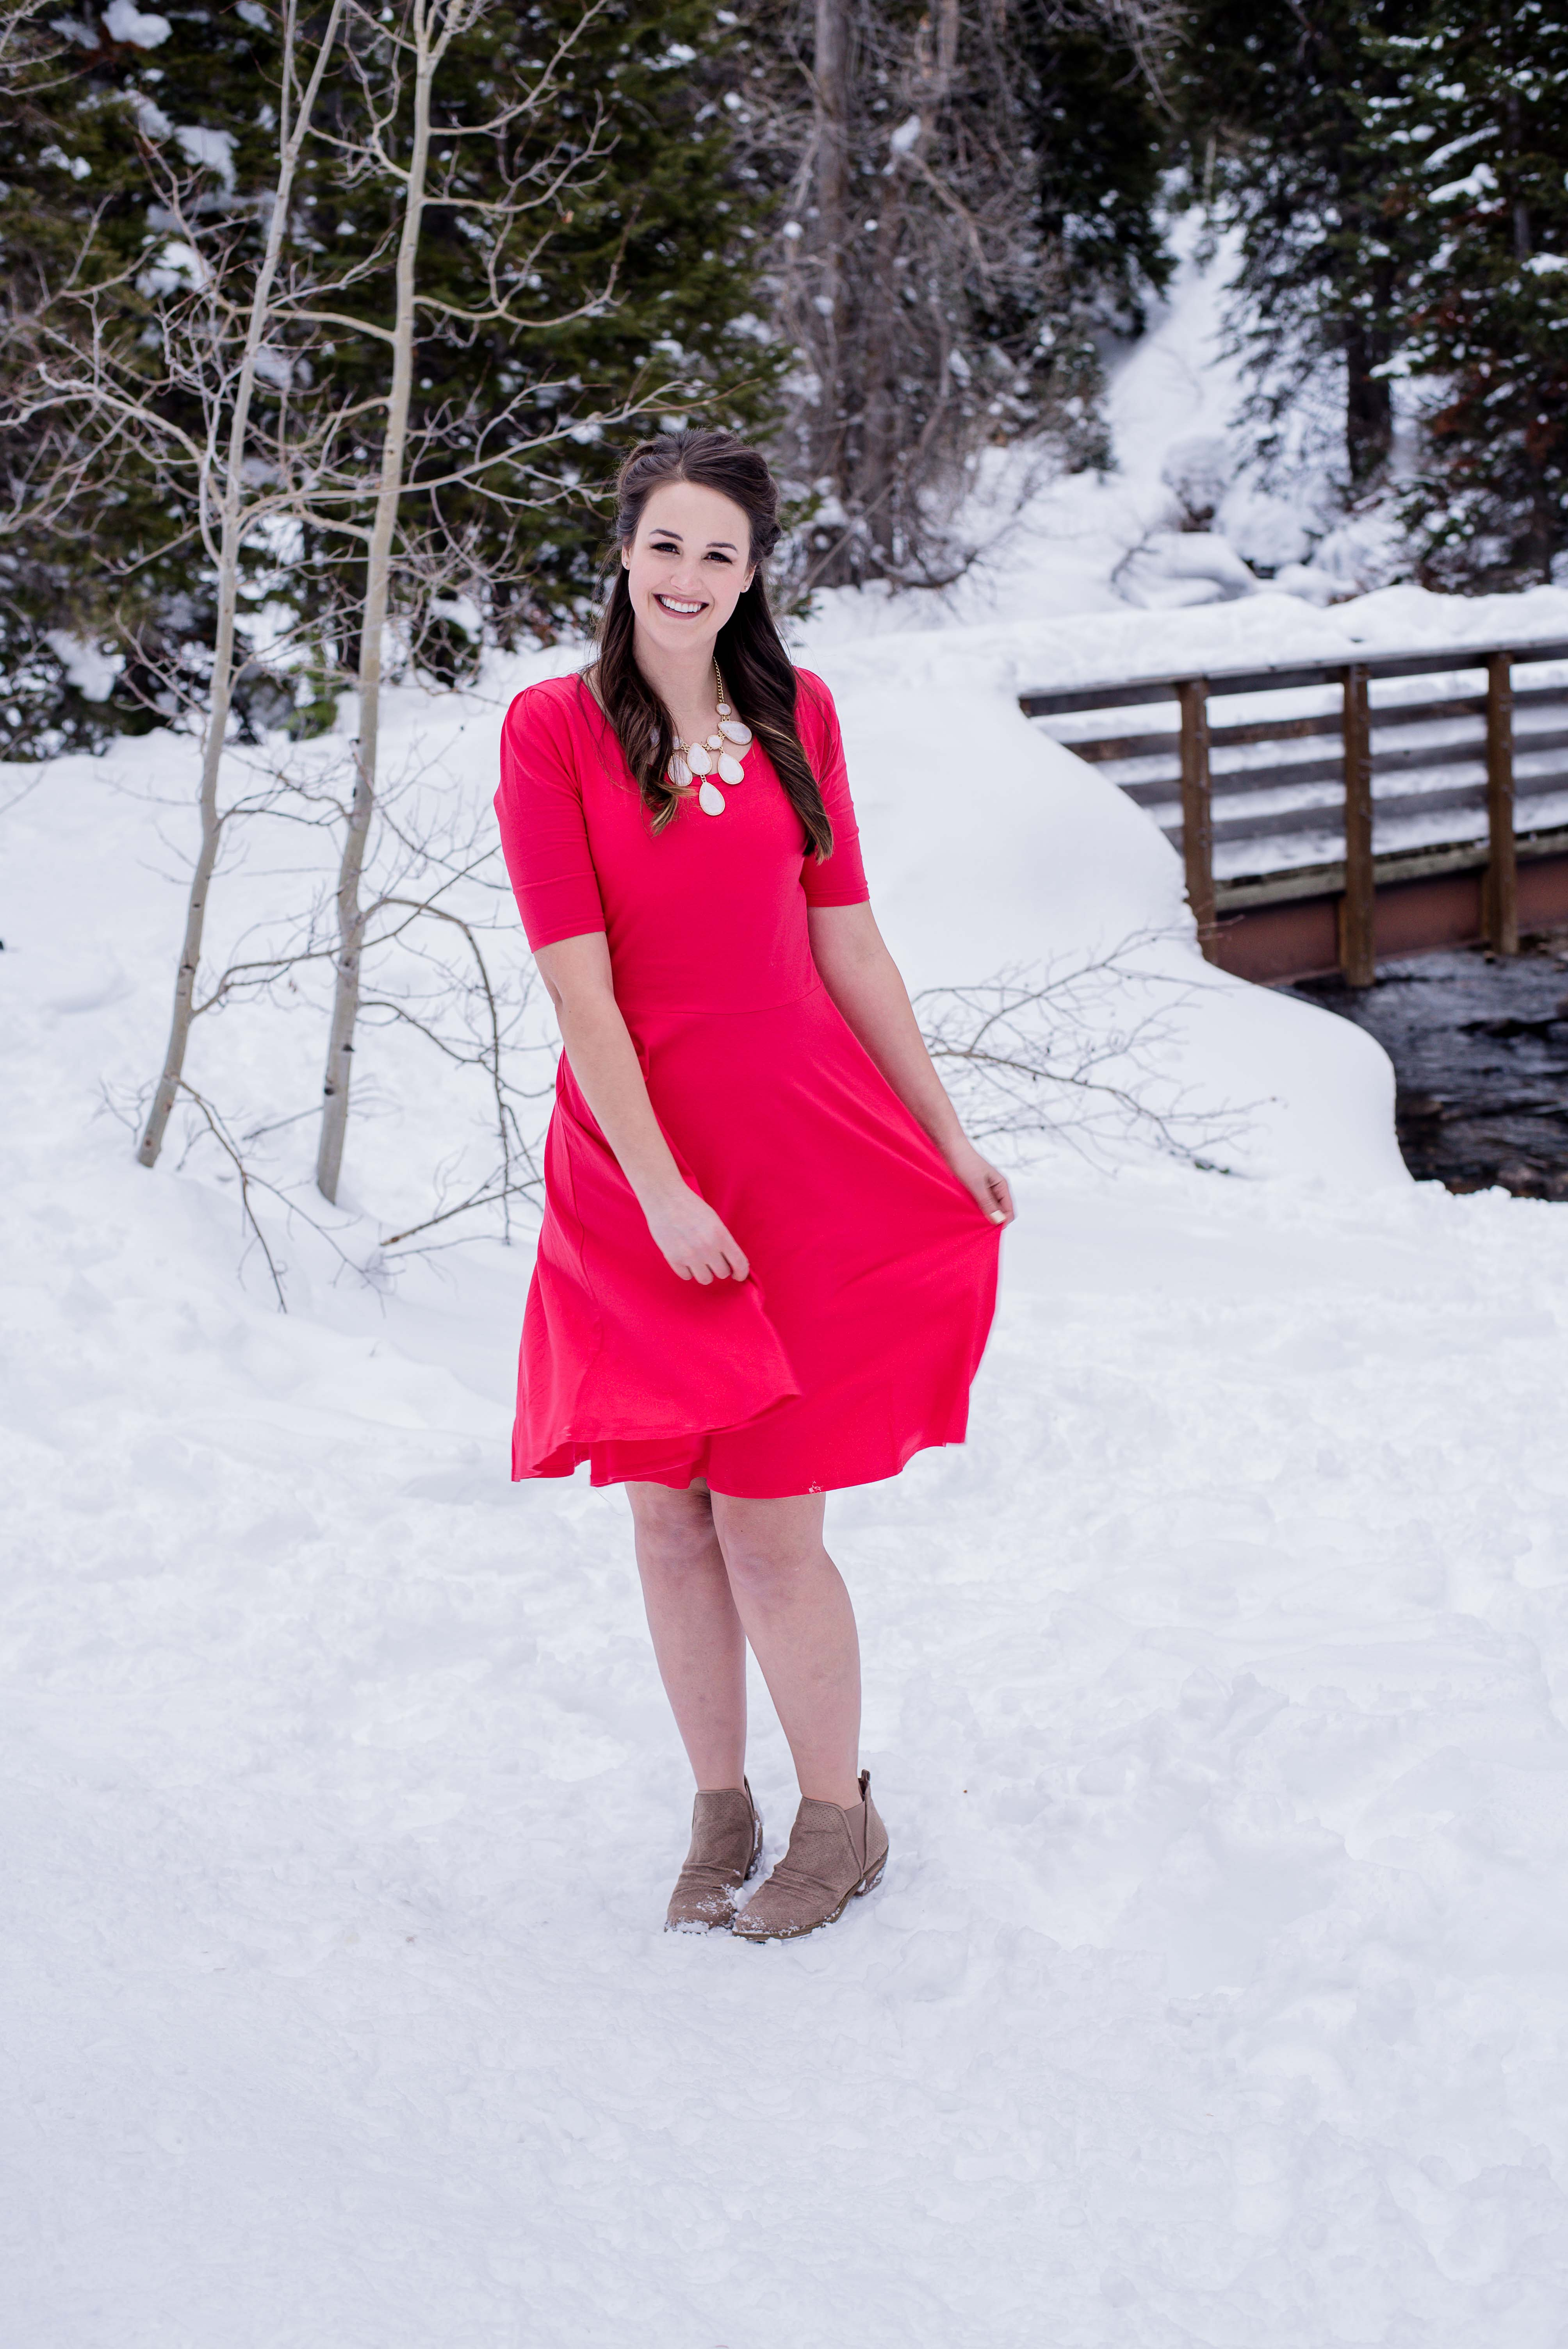 winter-wonderland-sadie-banks-photography-456